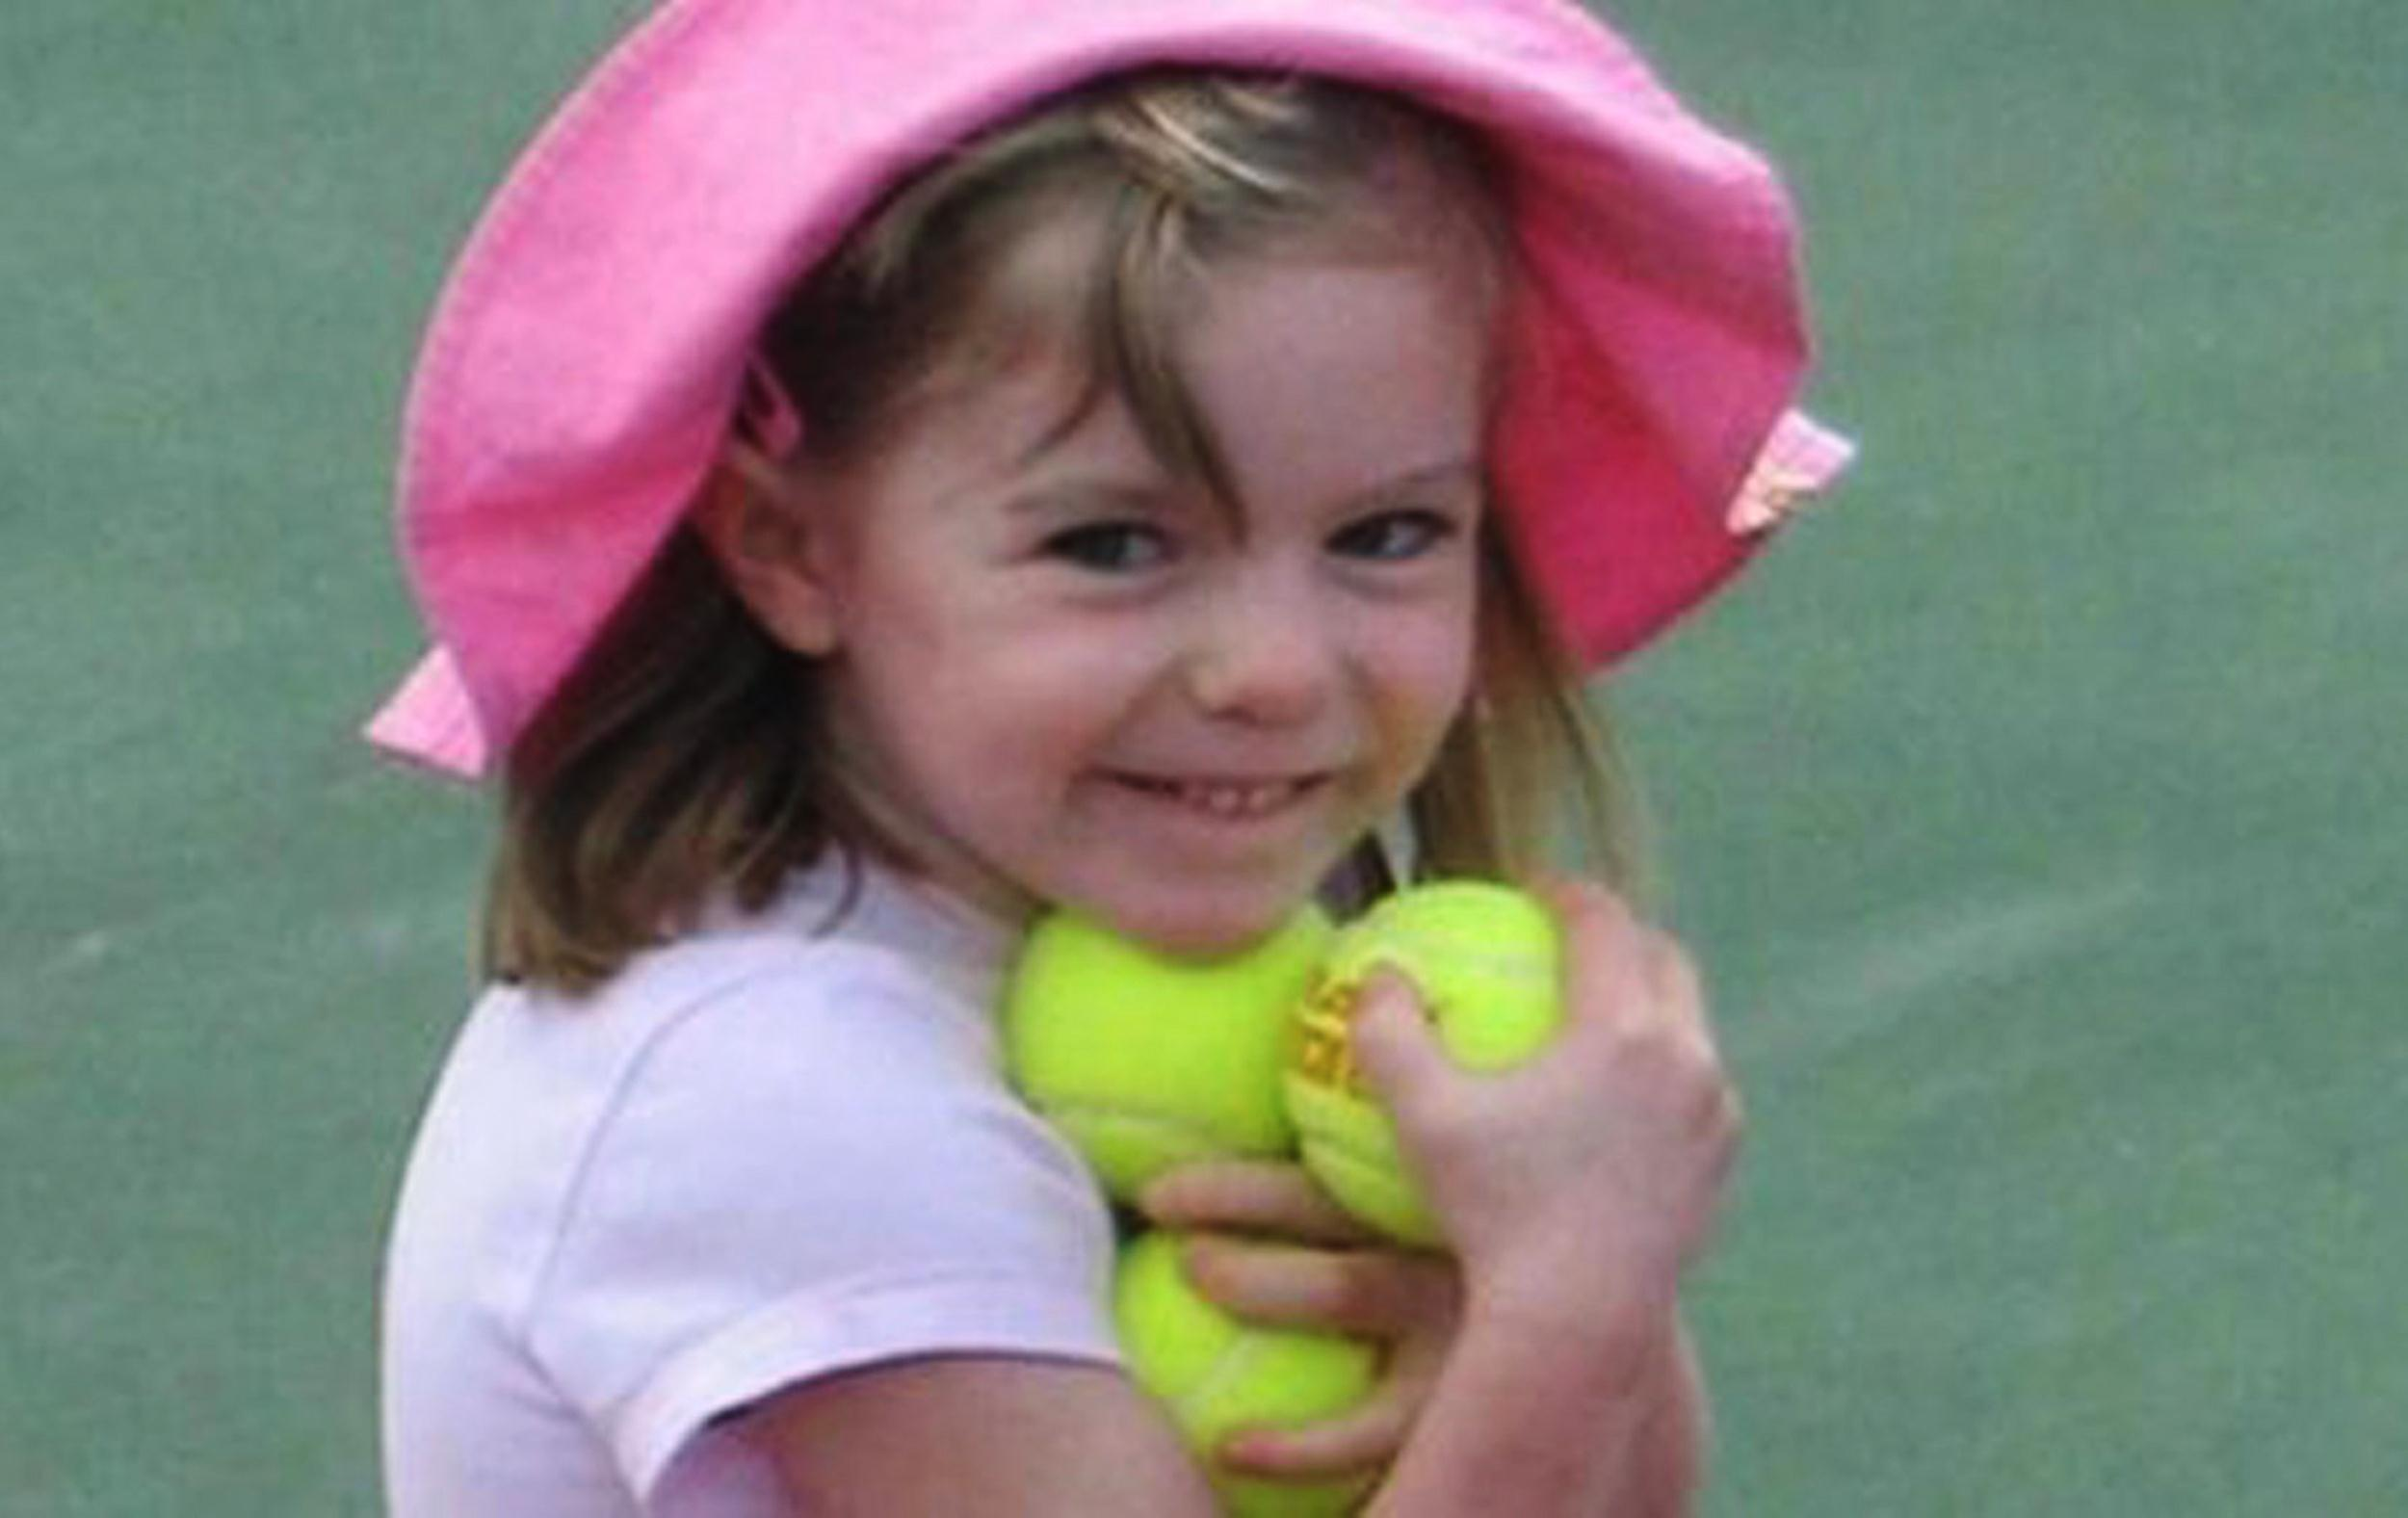 Image: Missing British girl Madeleine McCann poses in an undated photo released by police after she went missing from a Portuguese holiday complex.